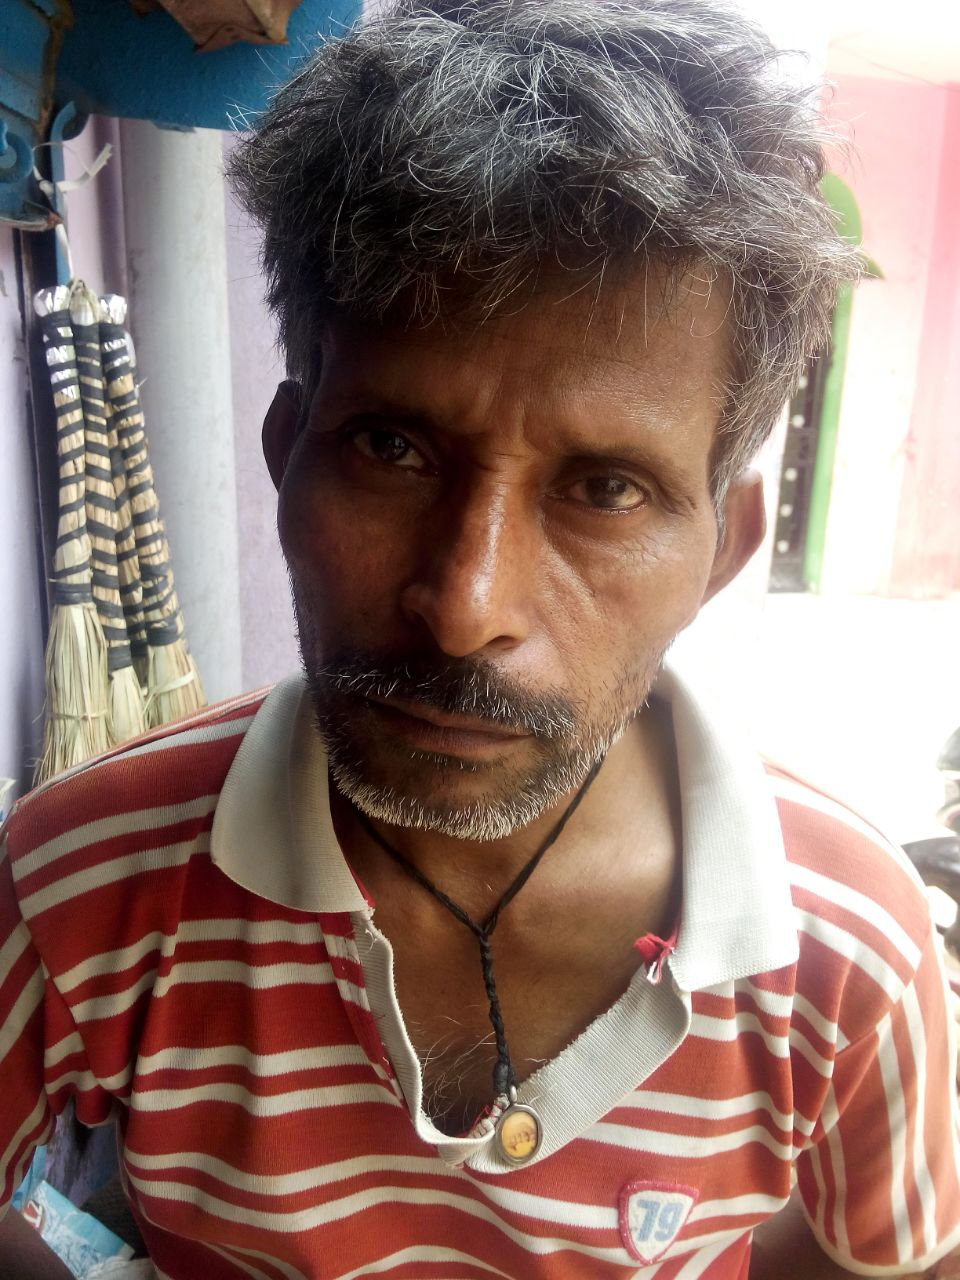 Meet Anil. He is 41 years old and suffers from alcohol abuse. He tells us his father and grandfather both drank heavily. He also tells us his brother died from liver failure, caused by drinking.